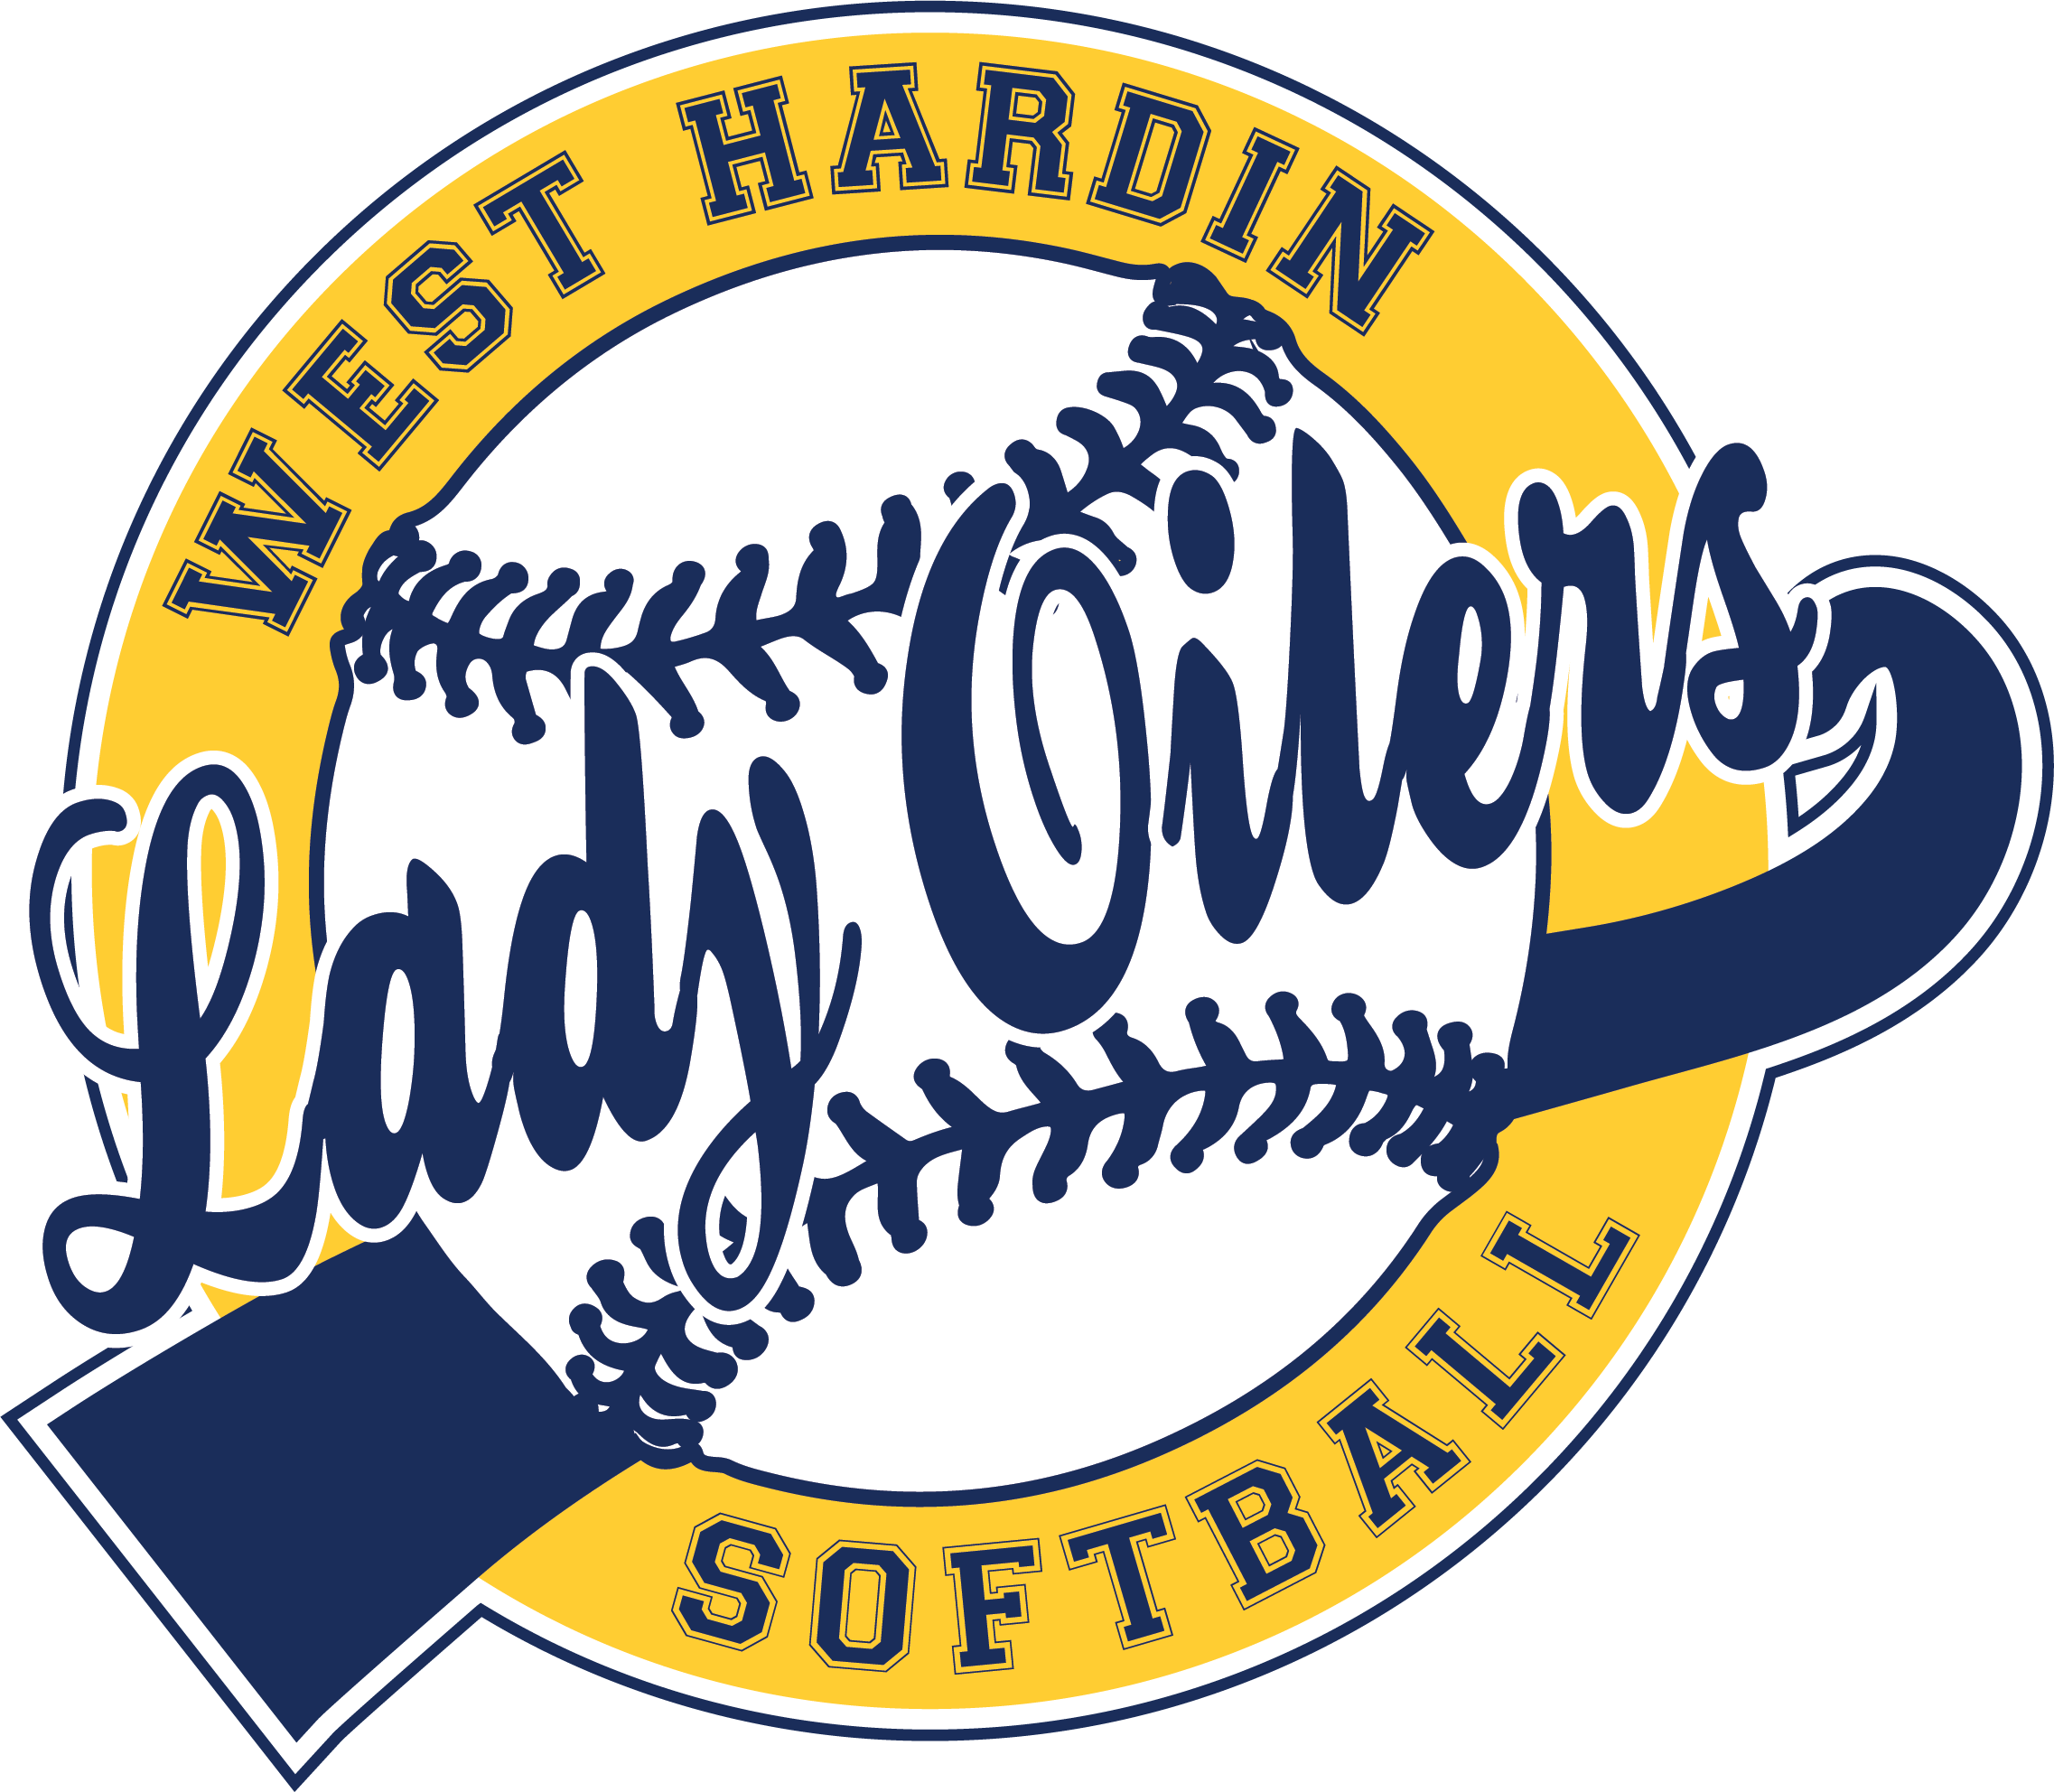 WEST HARDIN LADY OILERS SOFTBALL